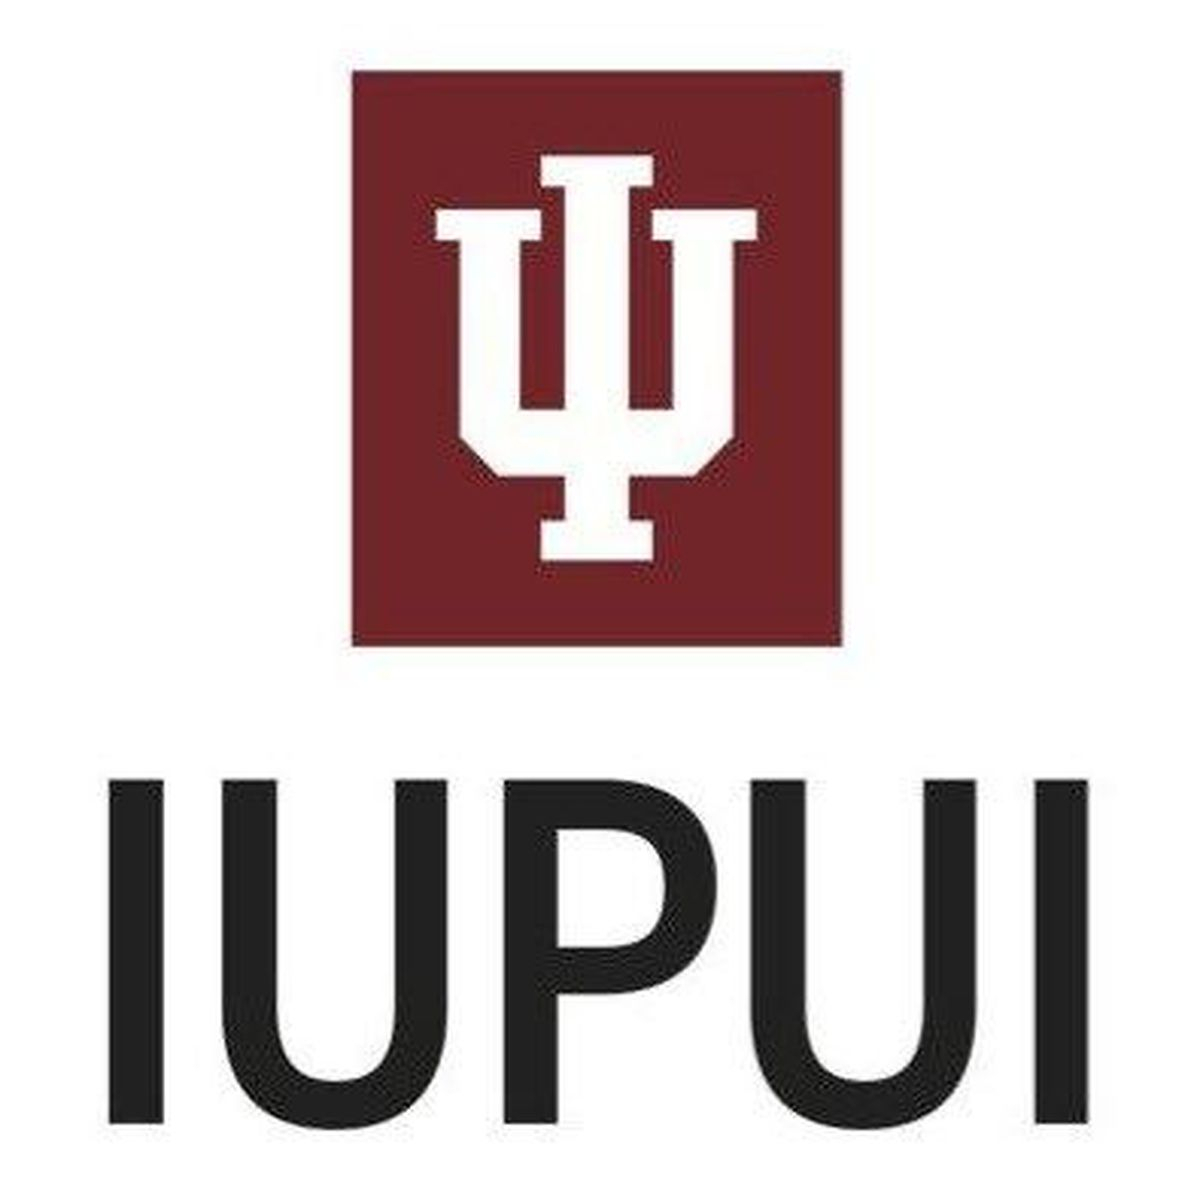 Man With Gun Reported Near Iupui Campus